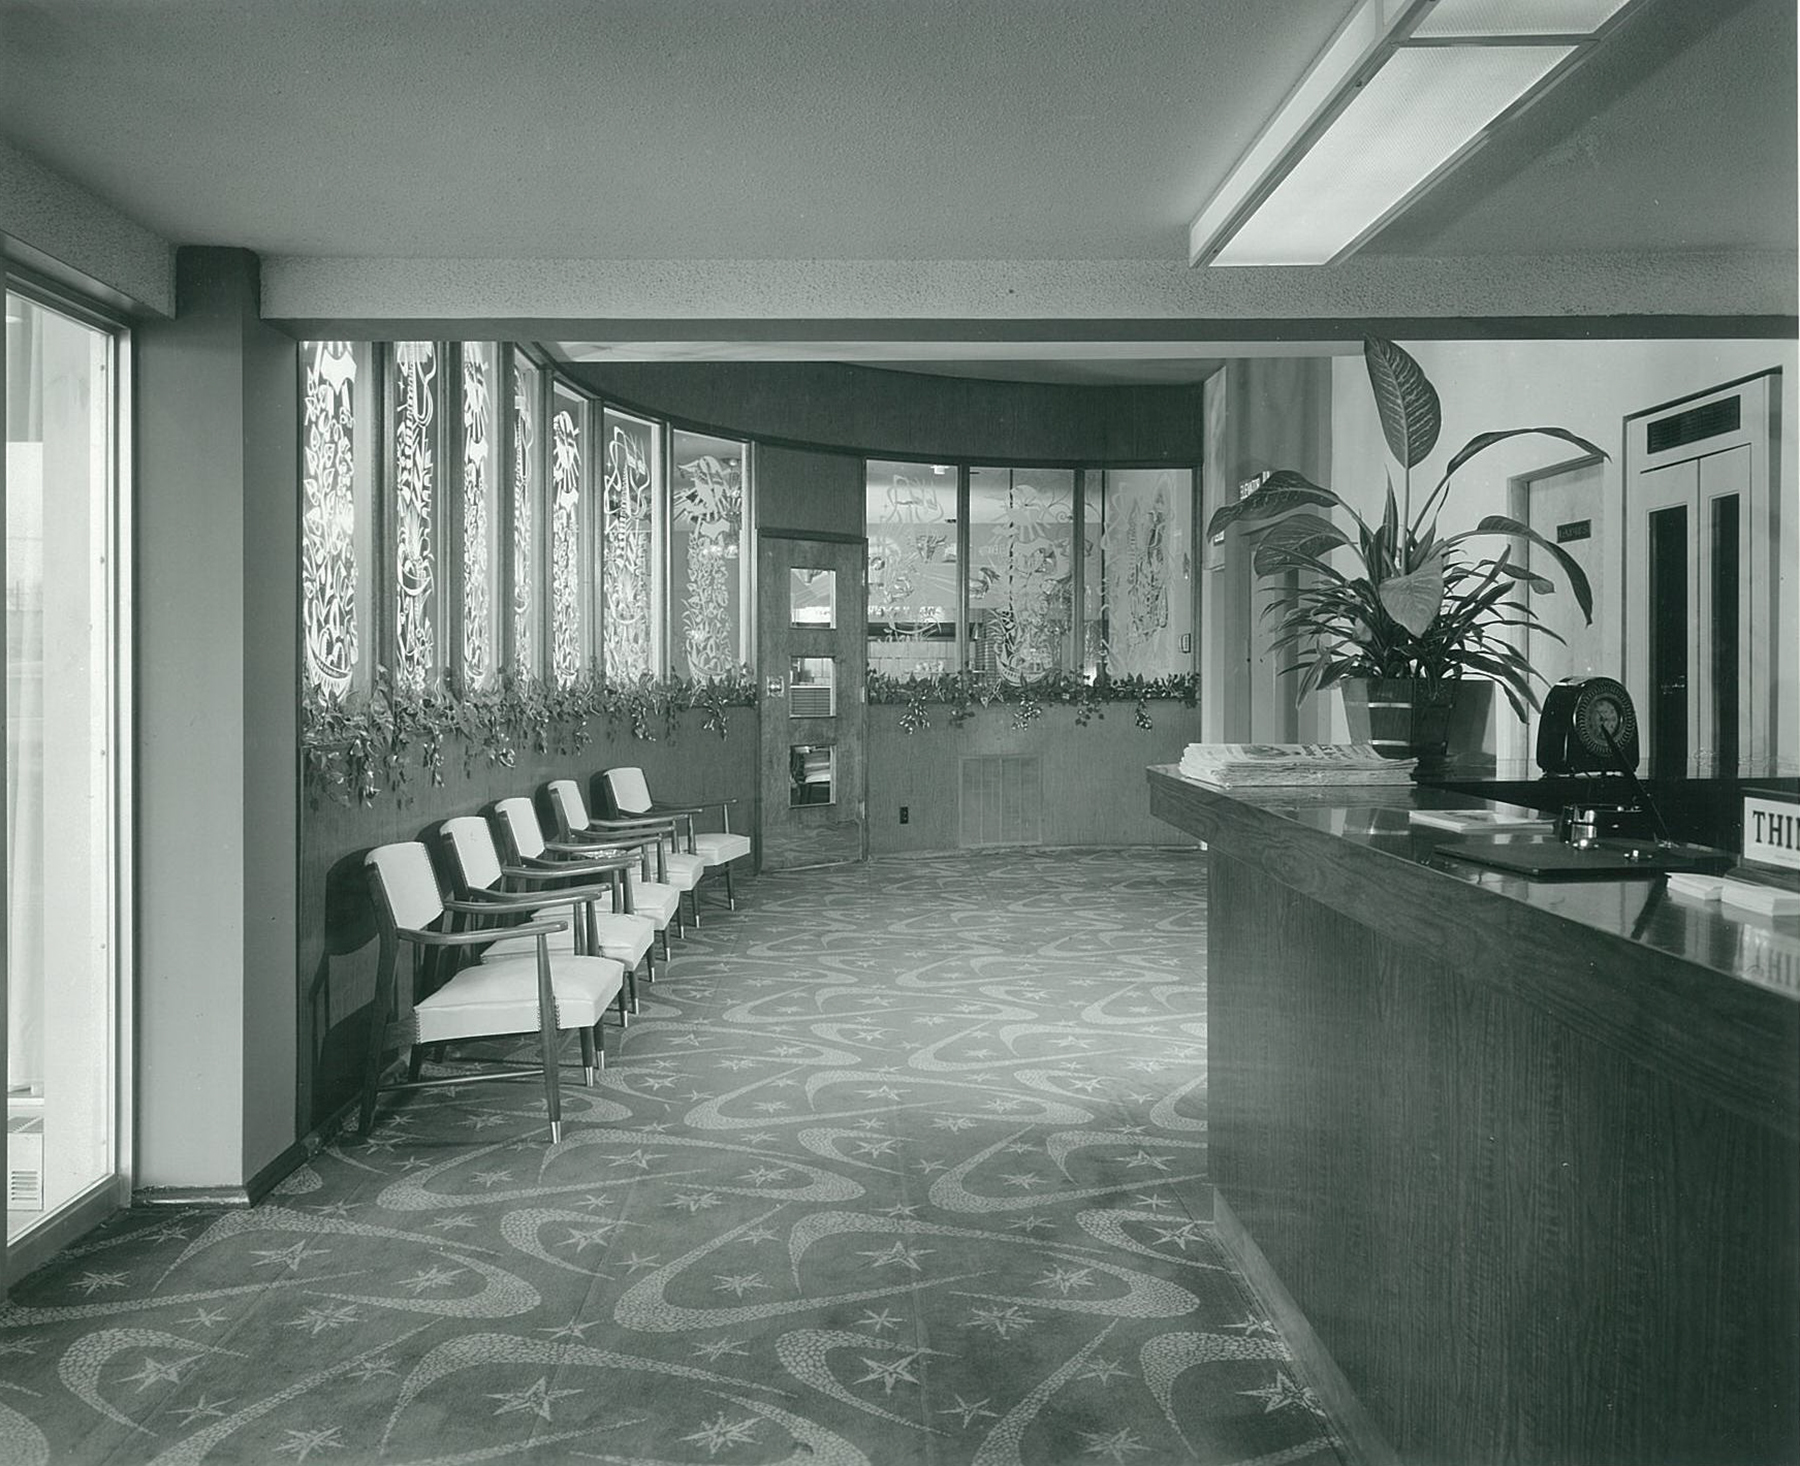 Airliner-Motel-Chicago-Illinois-Lobby-01